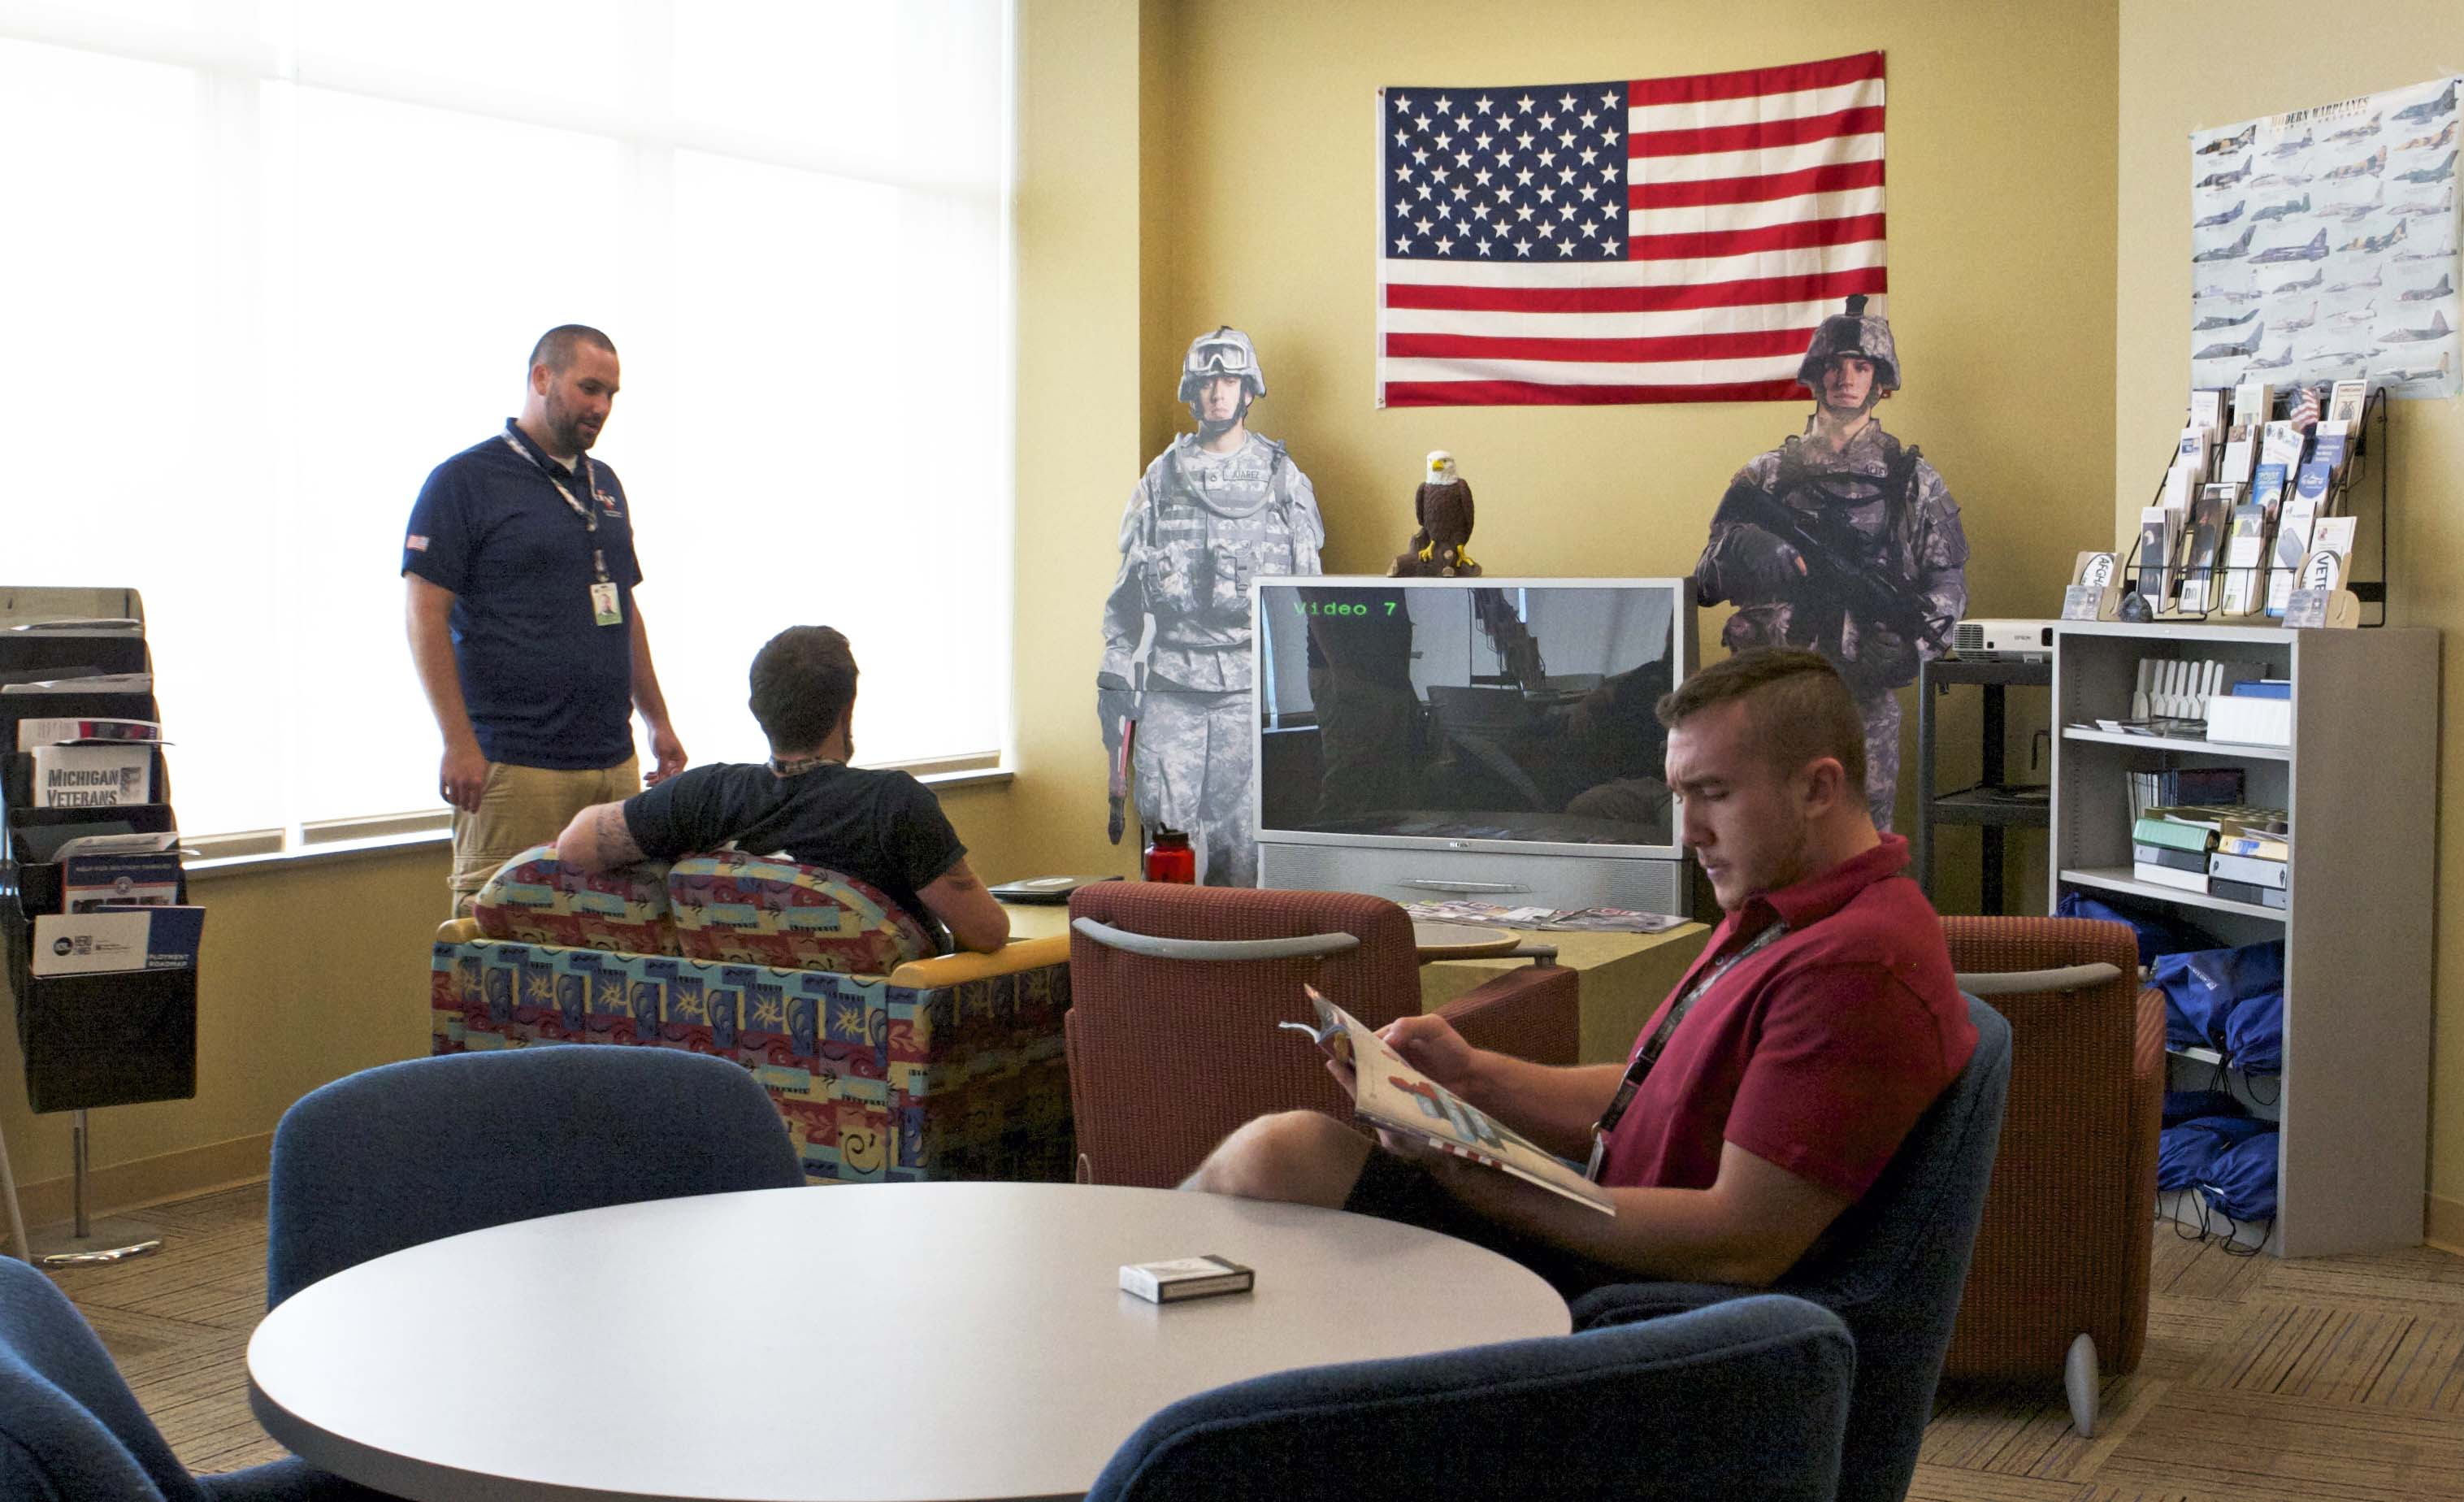 Student veterans relaxing in the Veterans Resource Center with their advisor. One student is reading a magazine